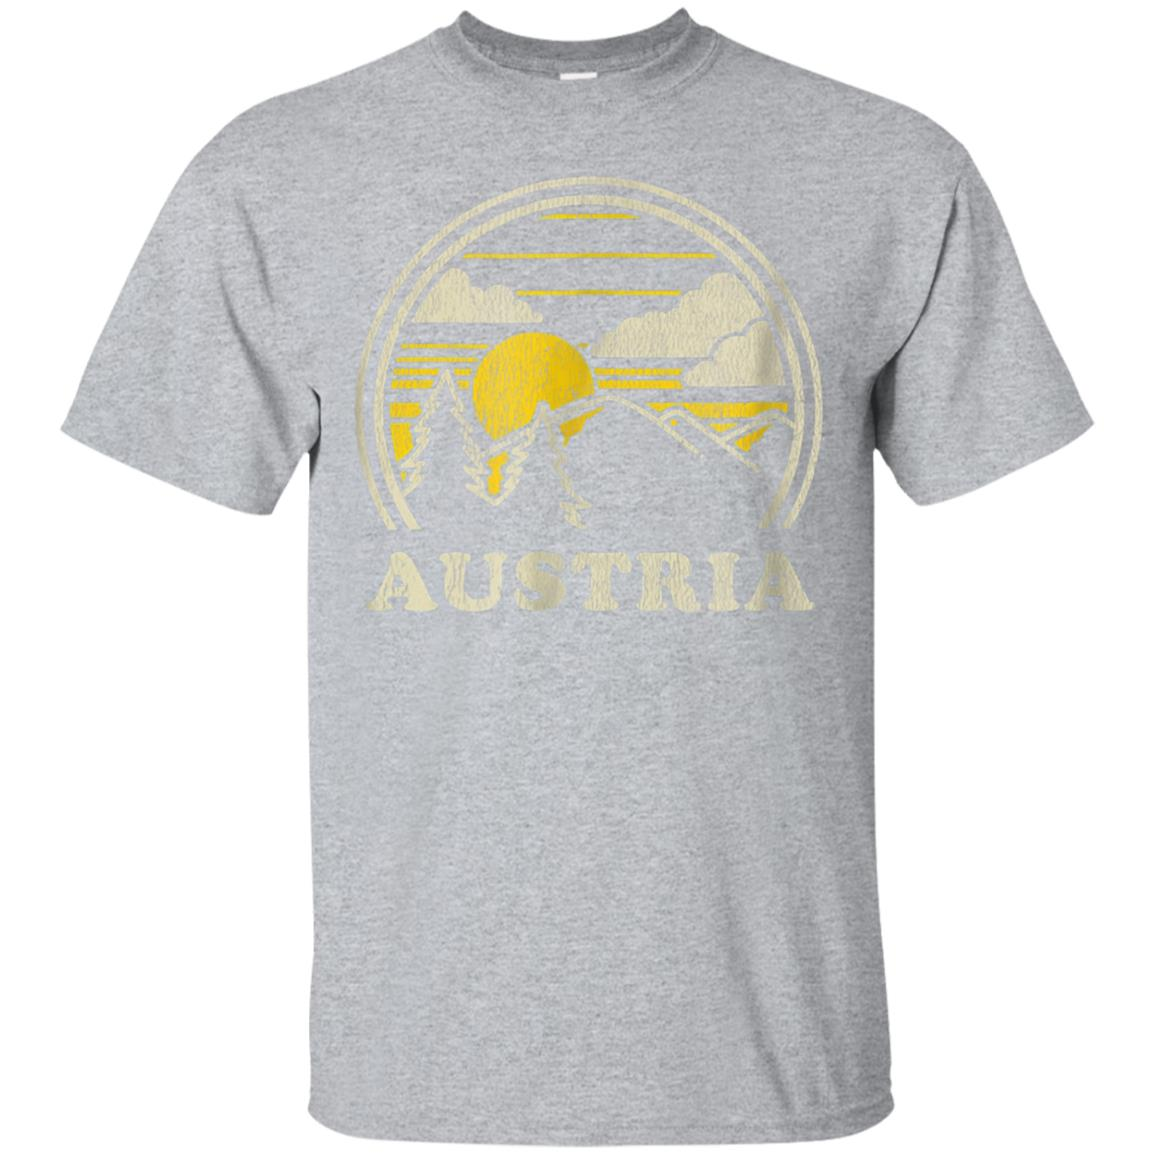 Austria T Shirt Vintage Hiking Mountains Tee 99promocode